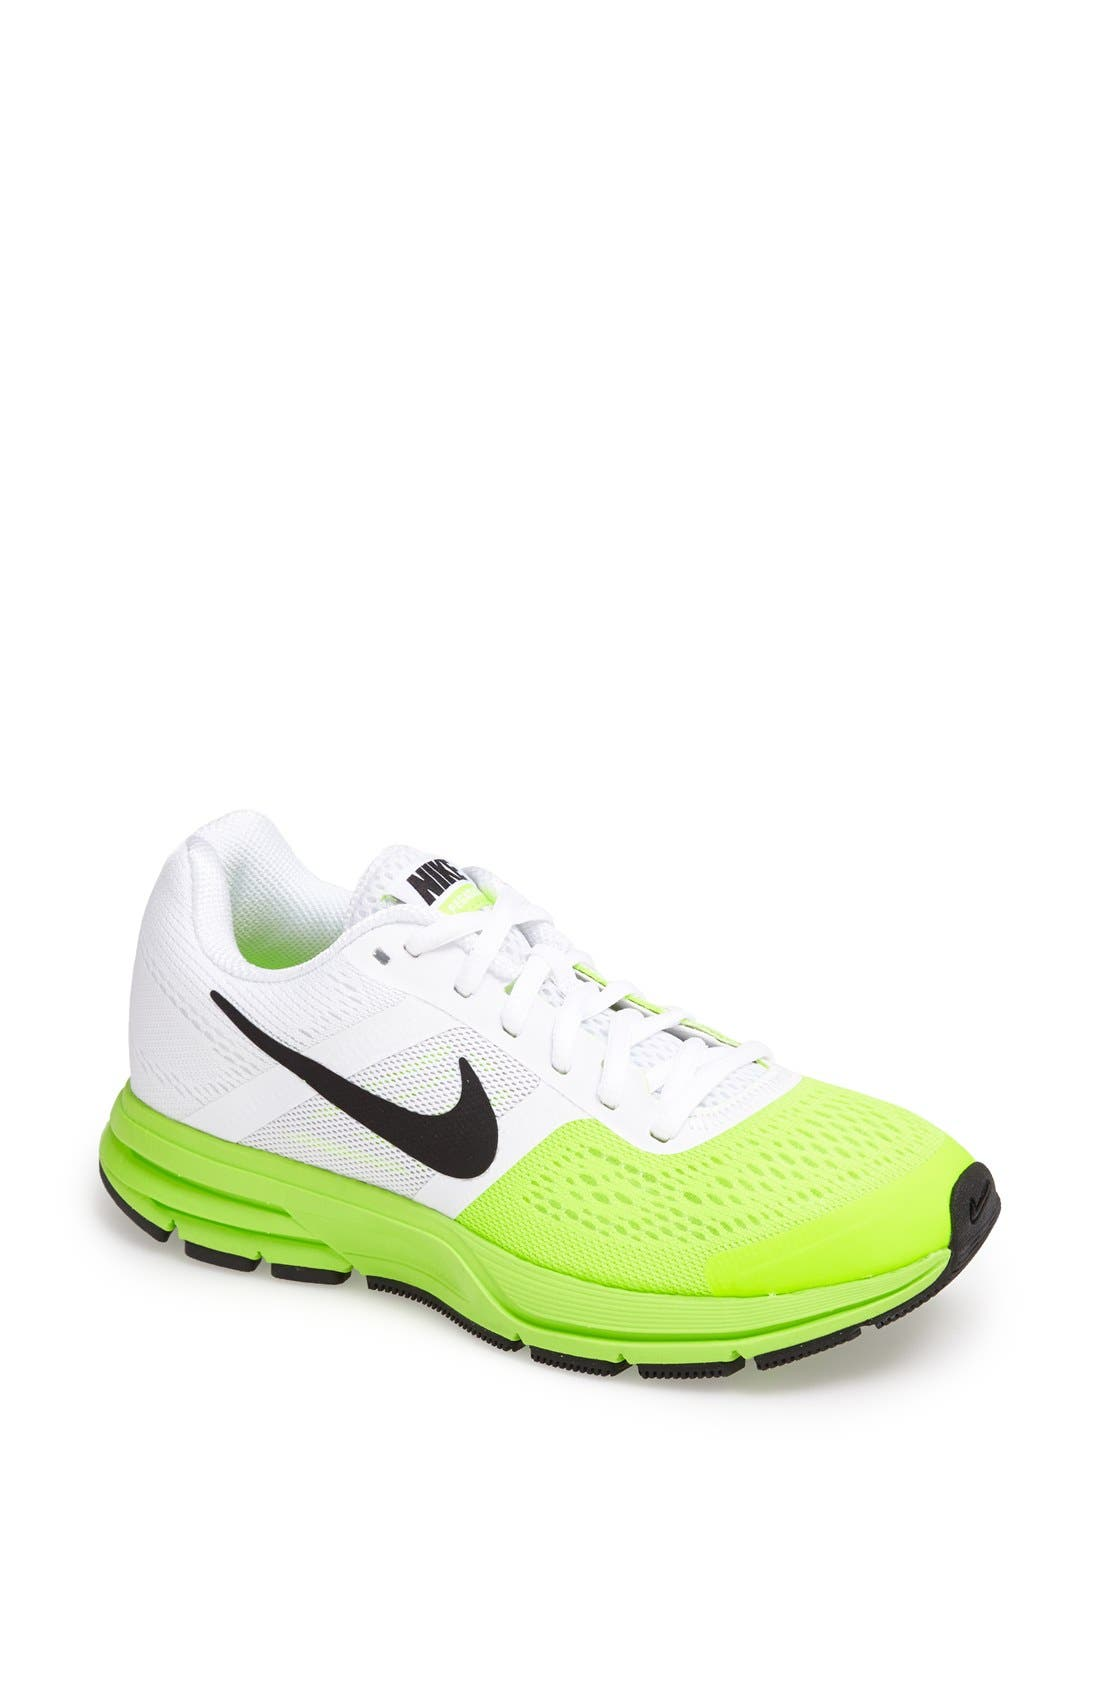 Main Image - Nike 'Air Pegasus+ 30' Running Shoe (Women)